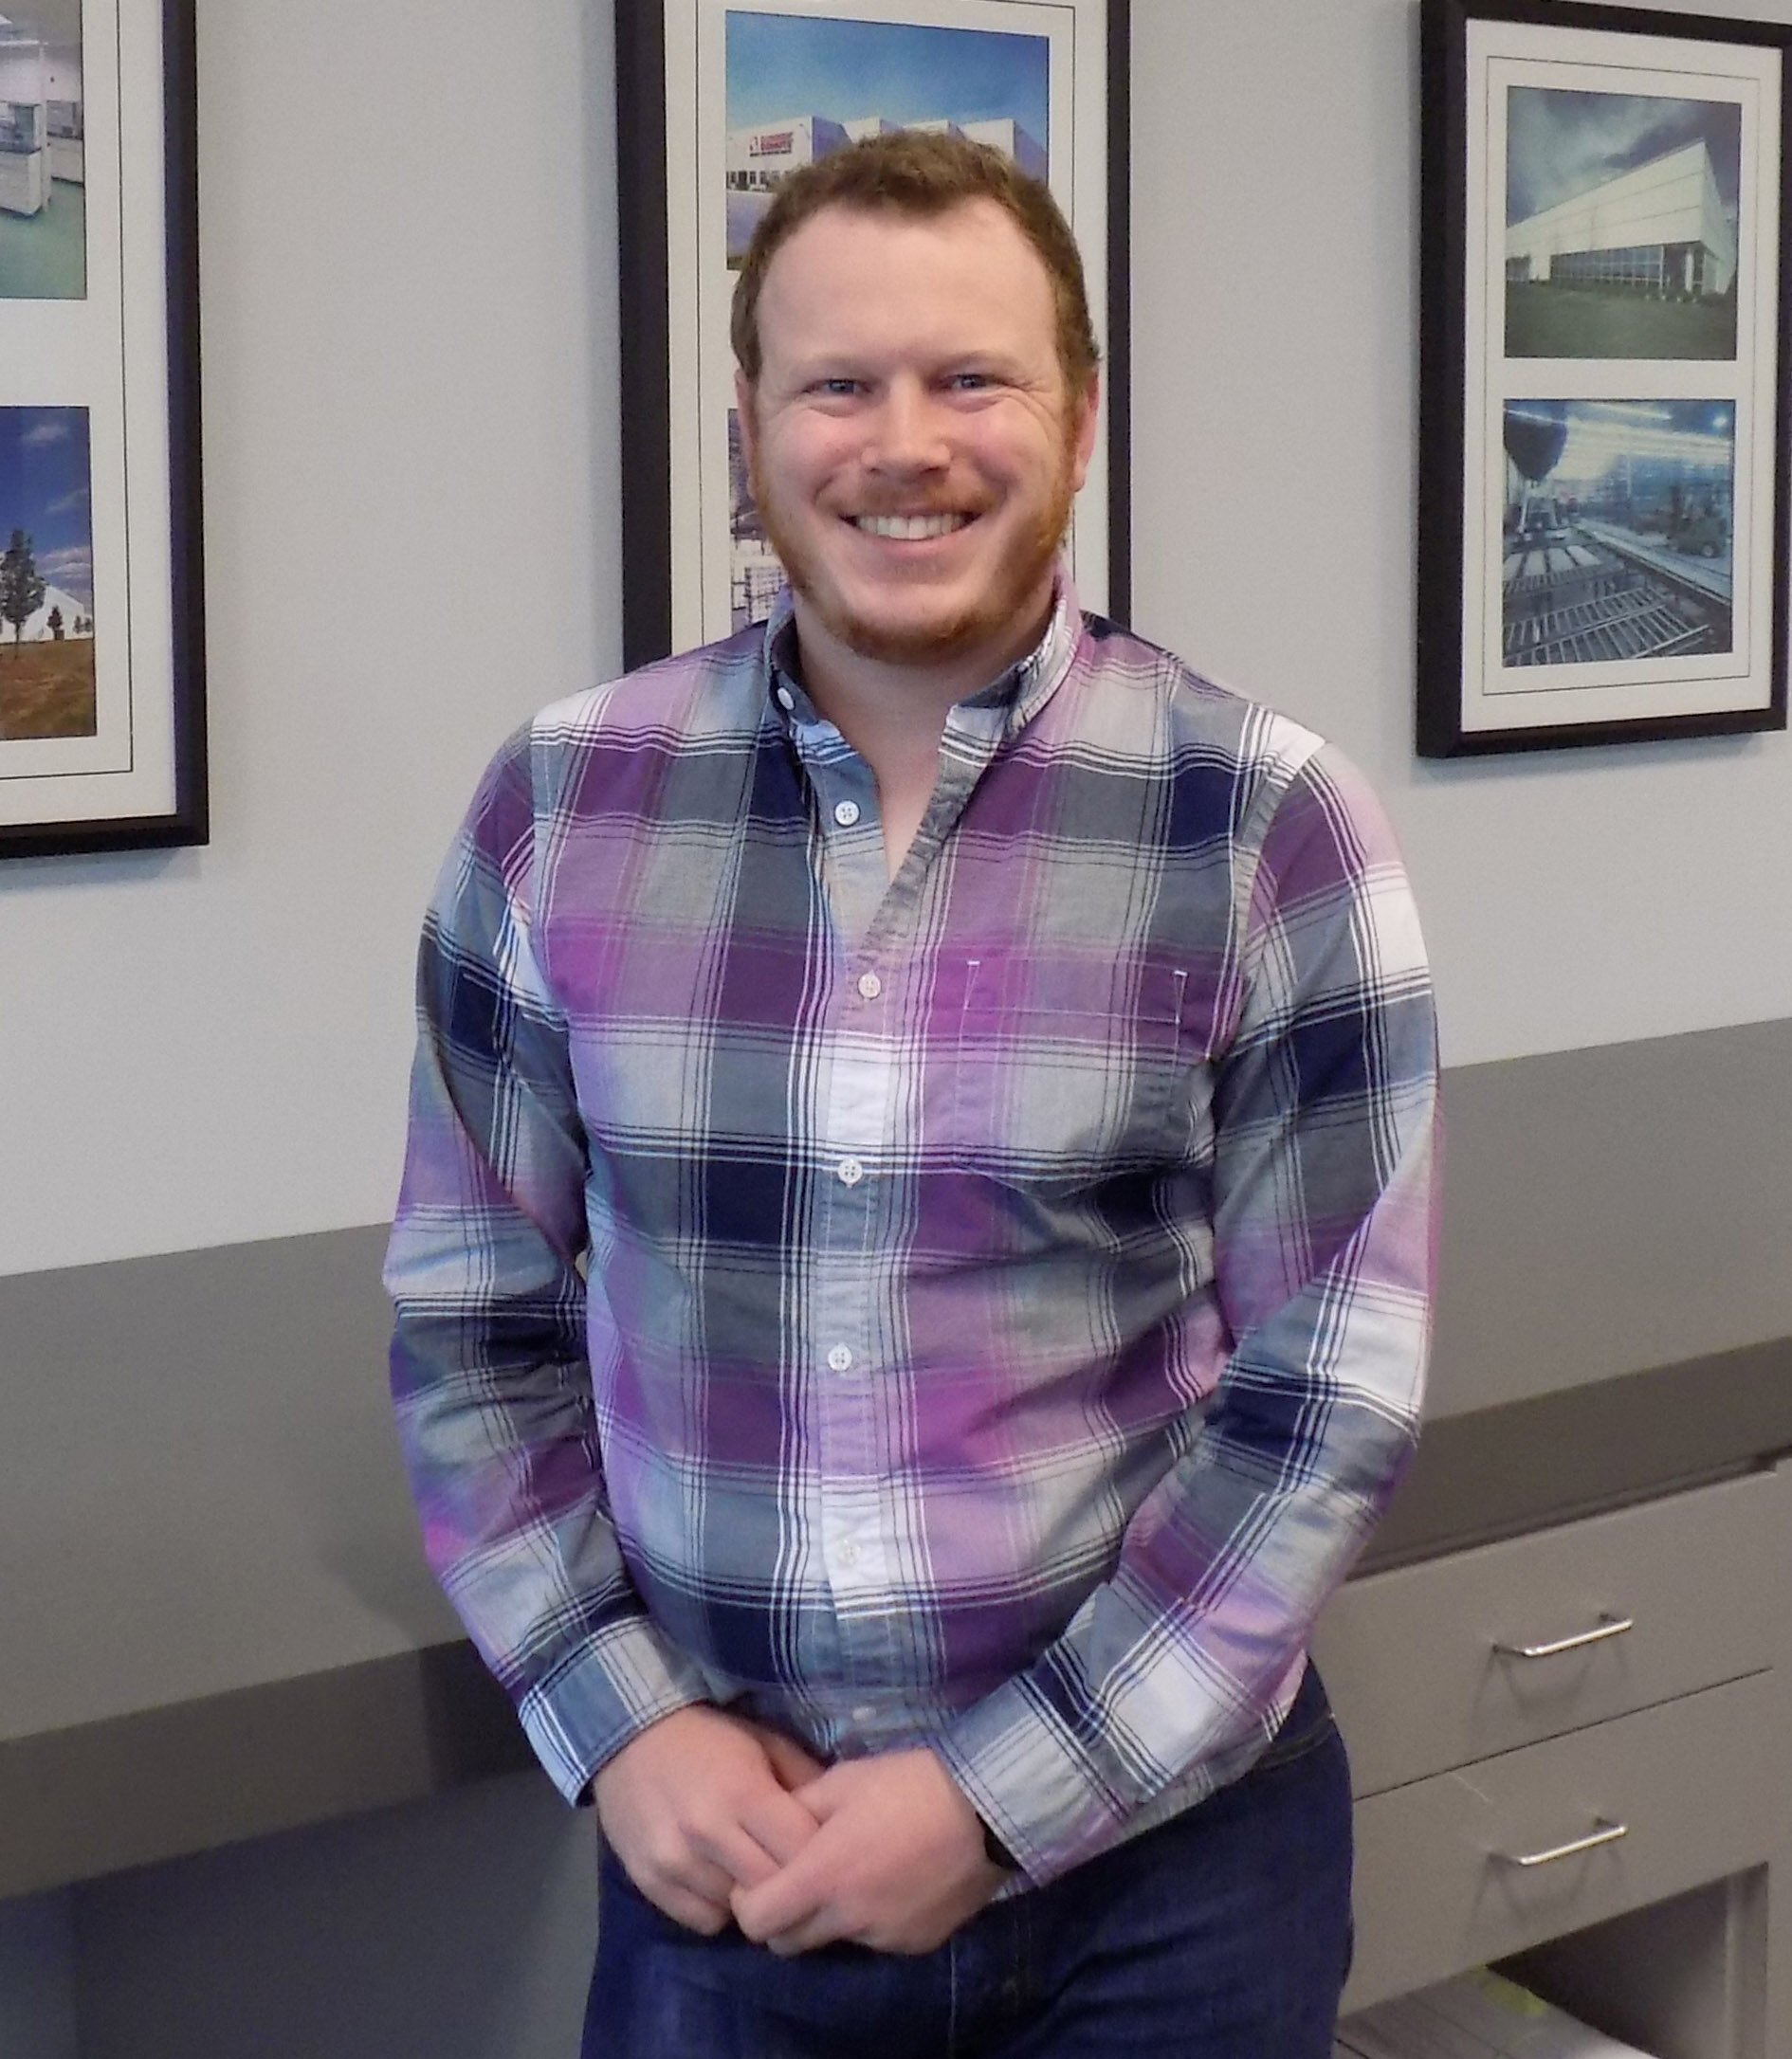 Andrew Maul, Project Engineer